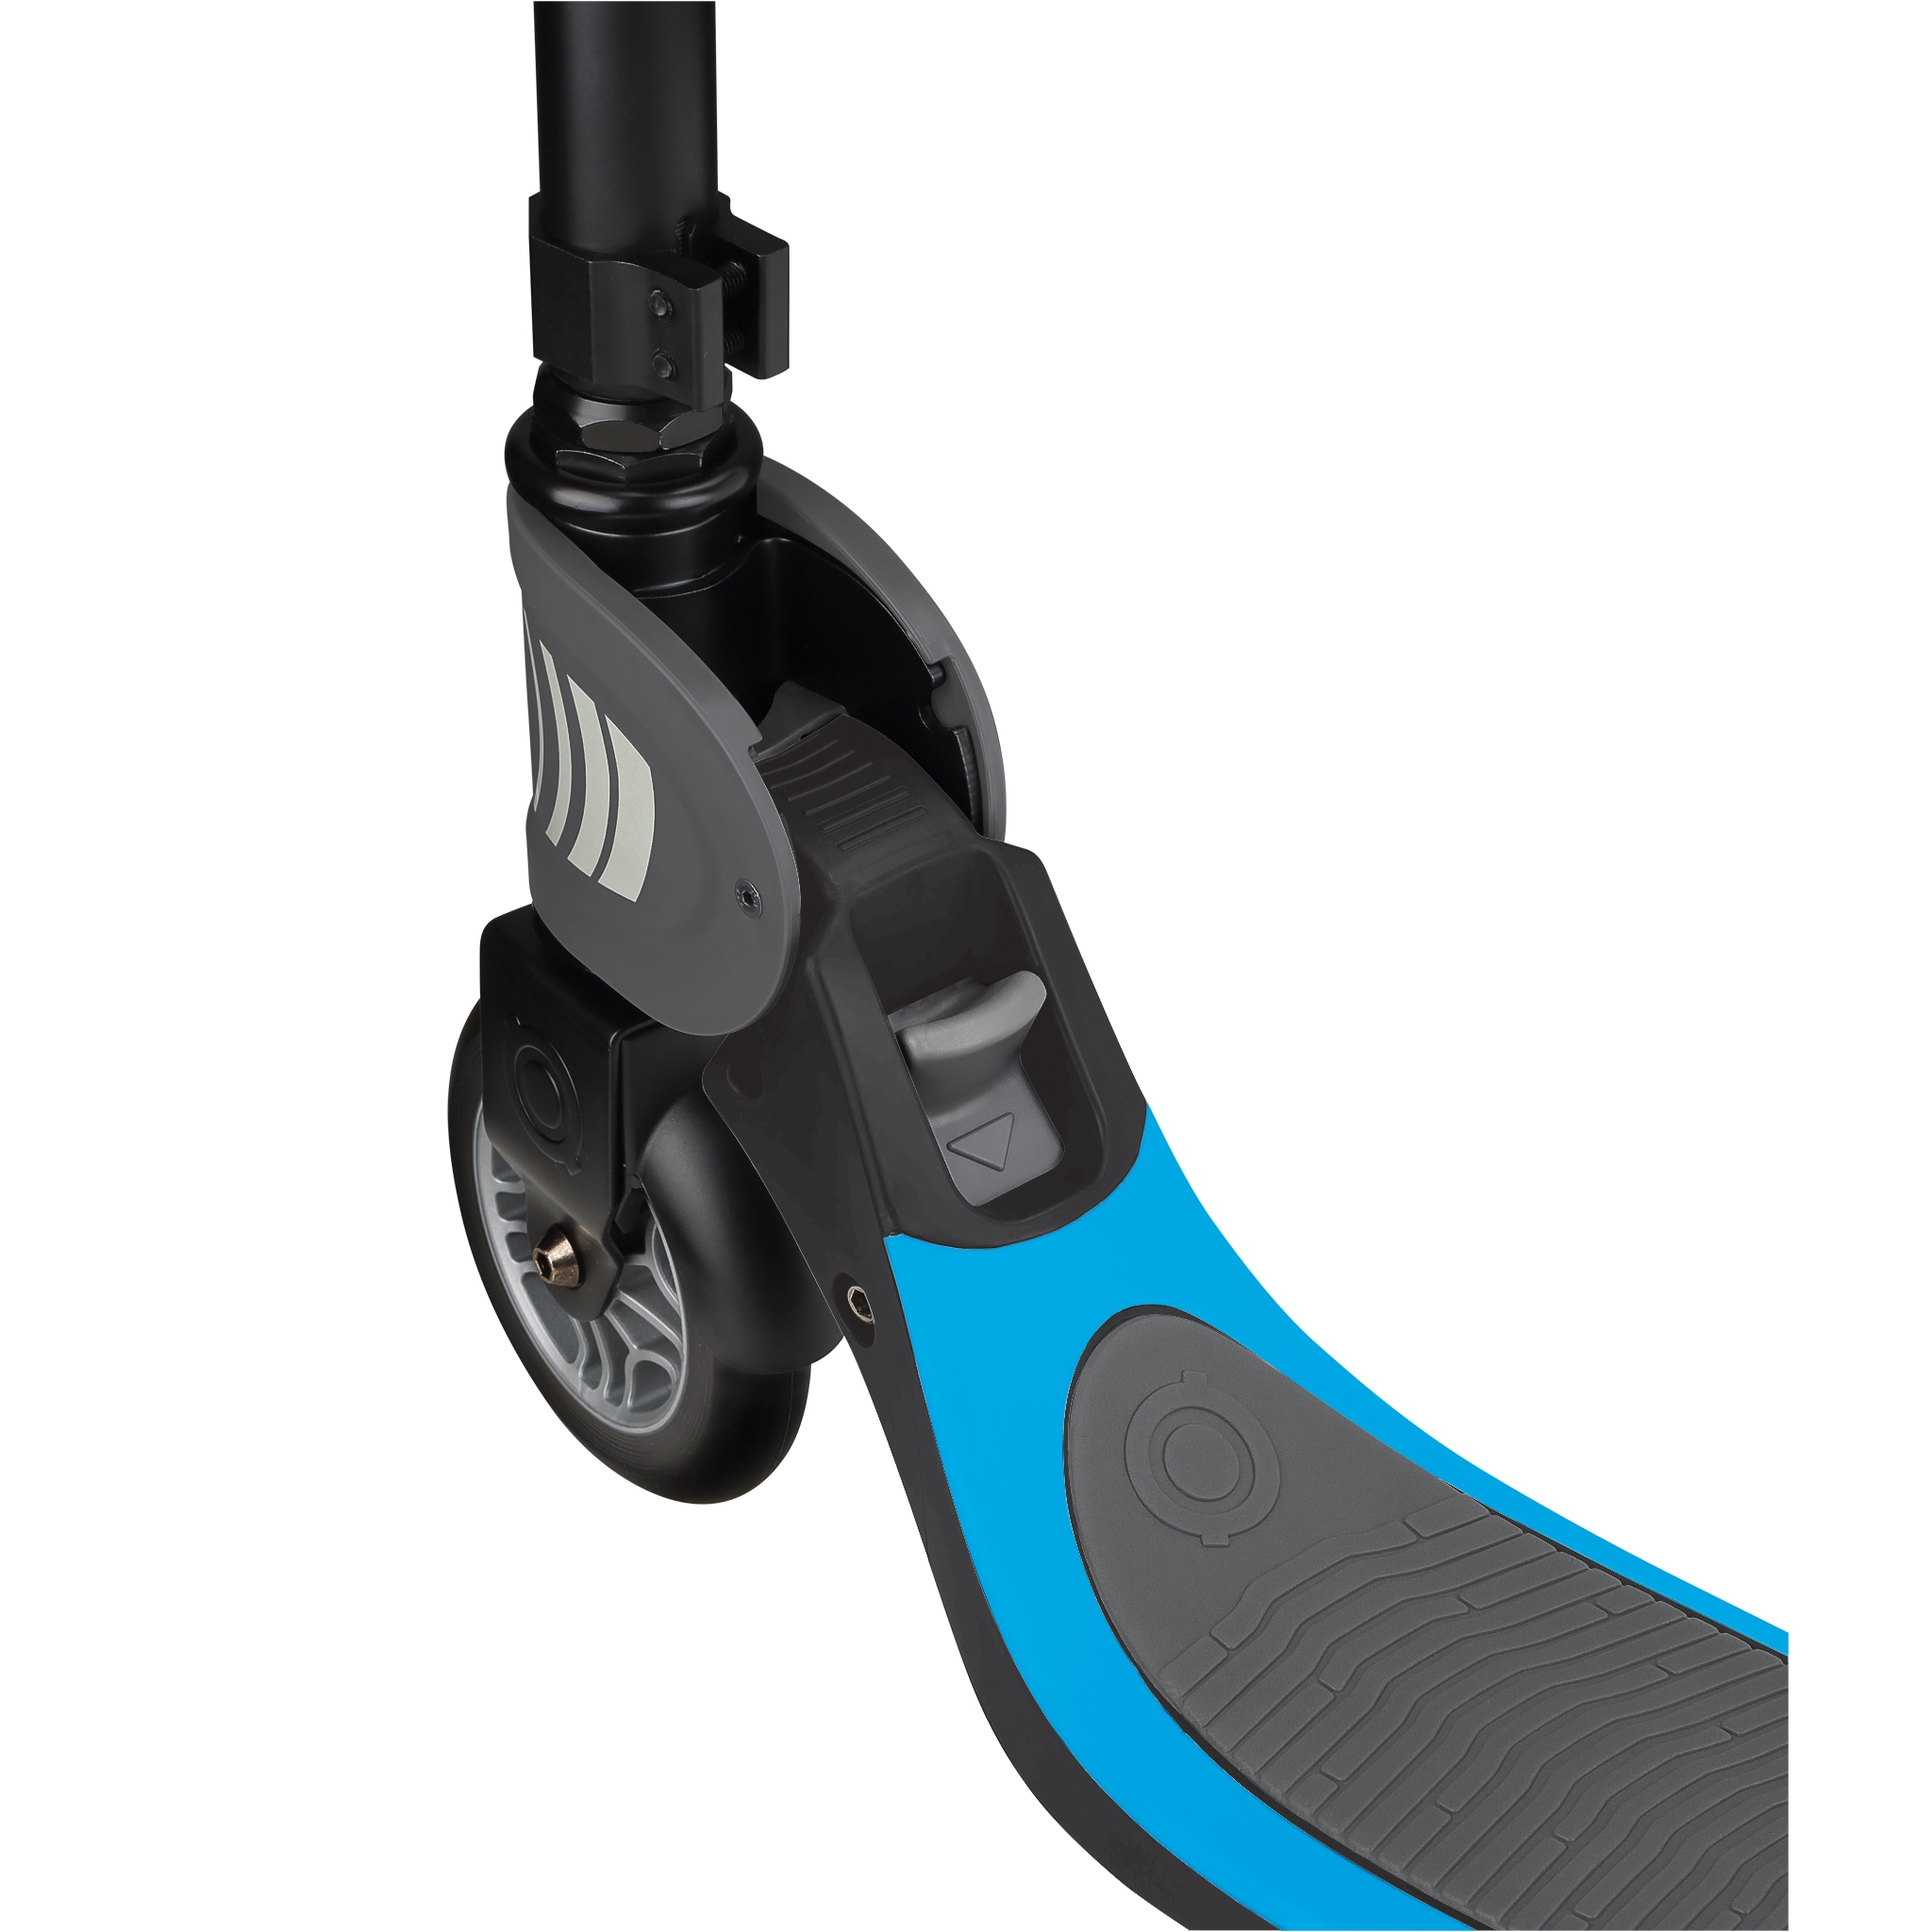 FLOW-FOLDABLE-125-2-wheel-folding-scooter-with-push-button-sky-blue